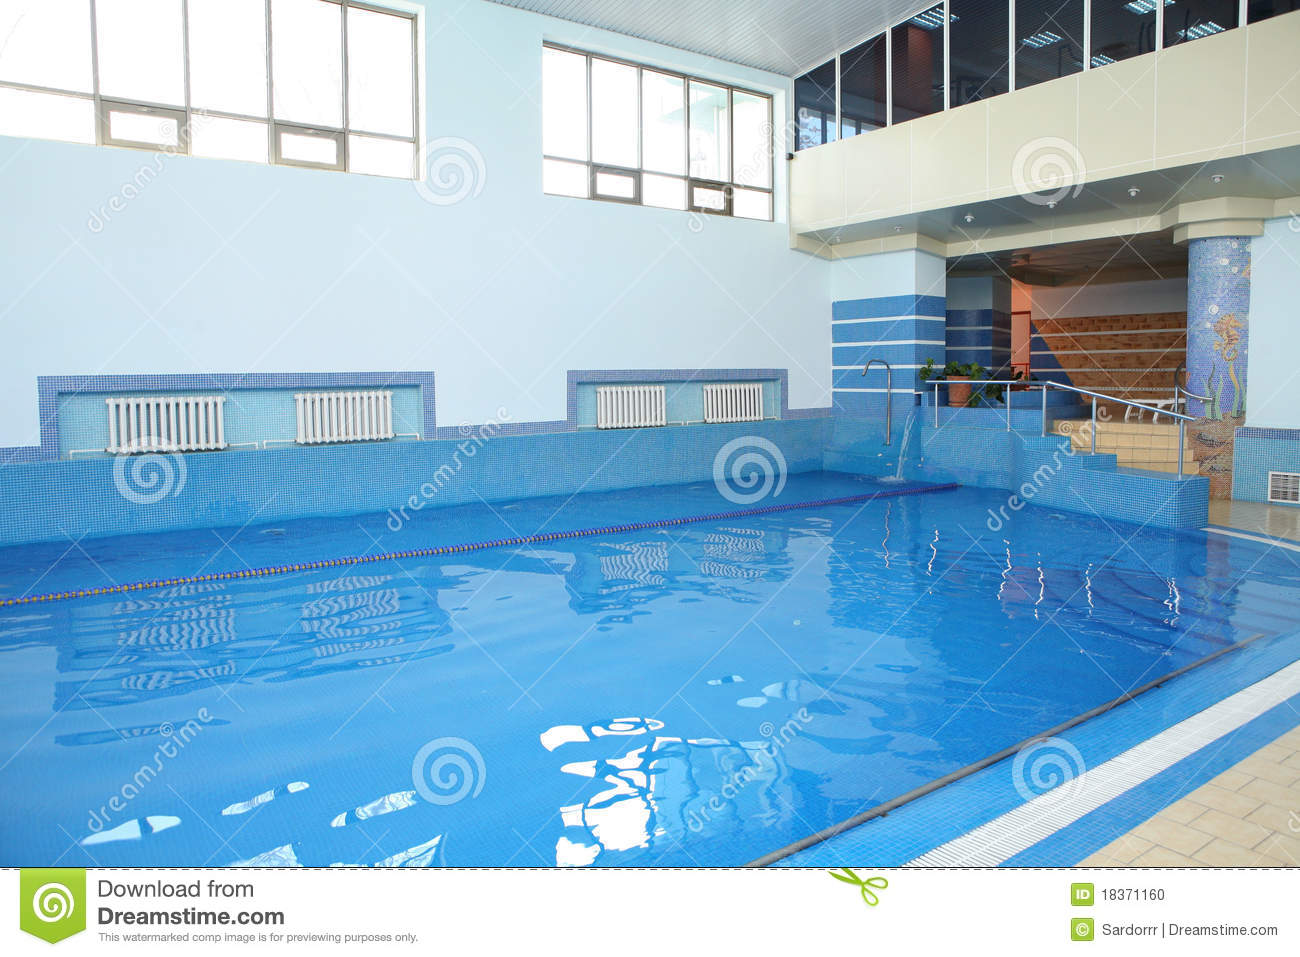 Piscine carrel e avec de l 39 eau bleu photo stock image for Prix piscine carrelee